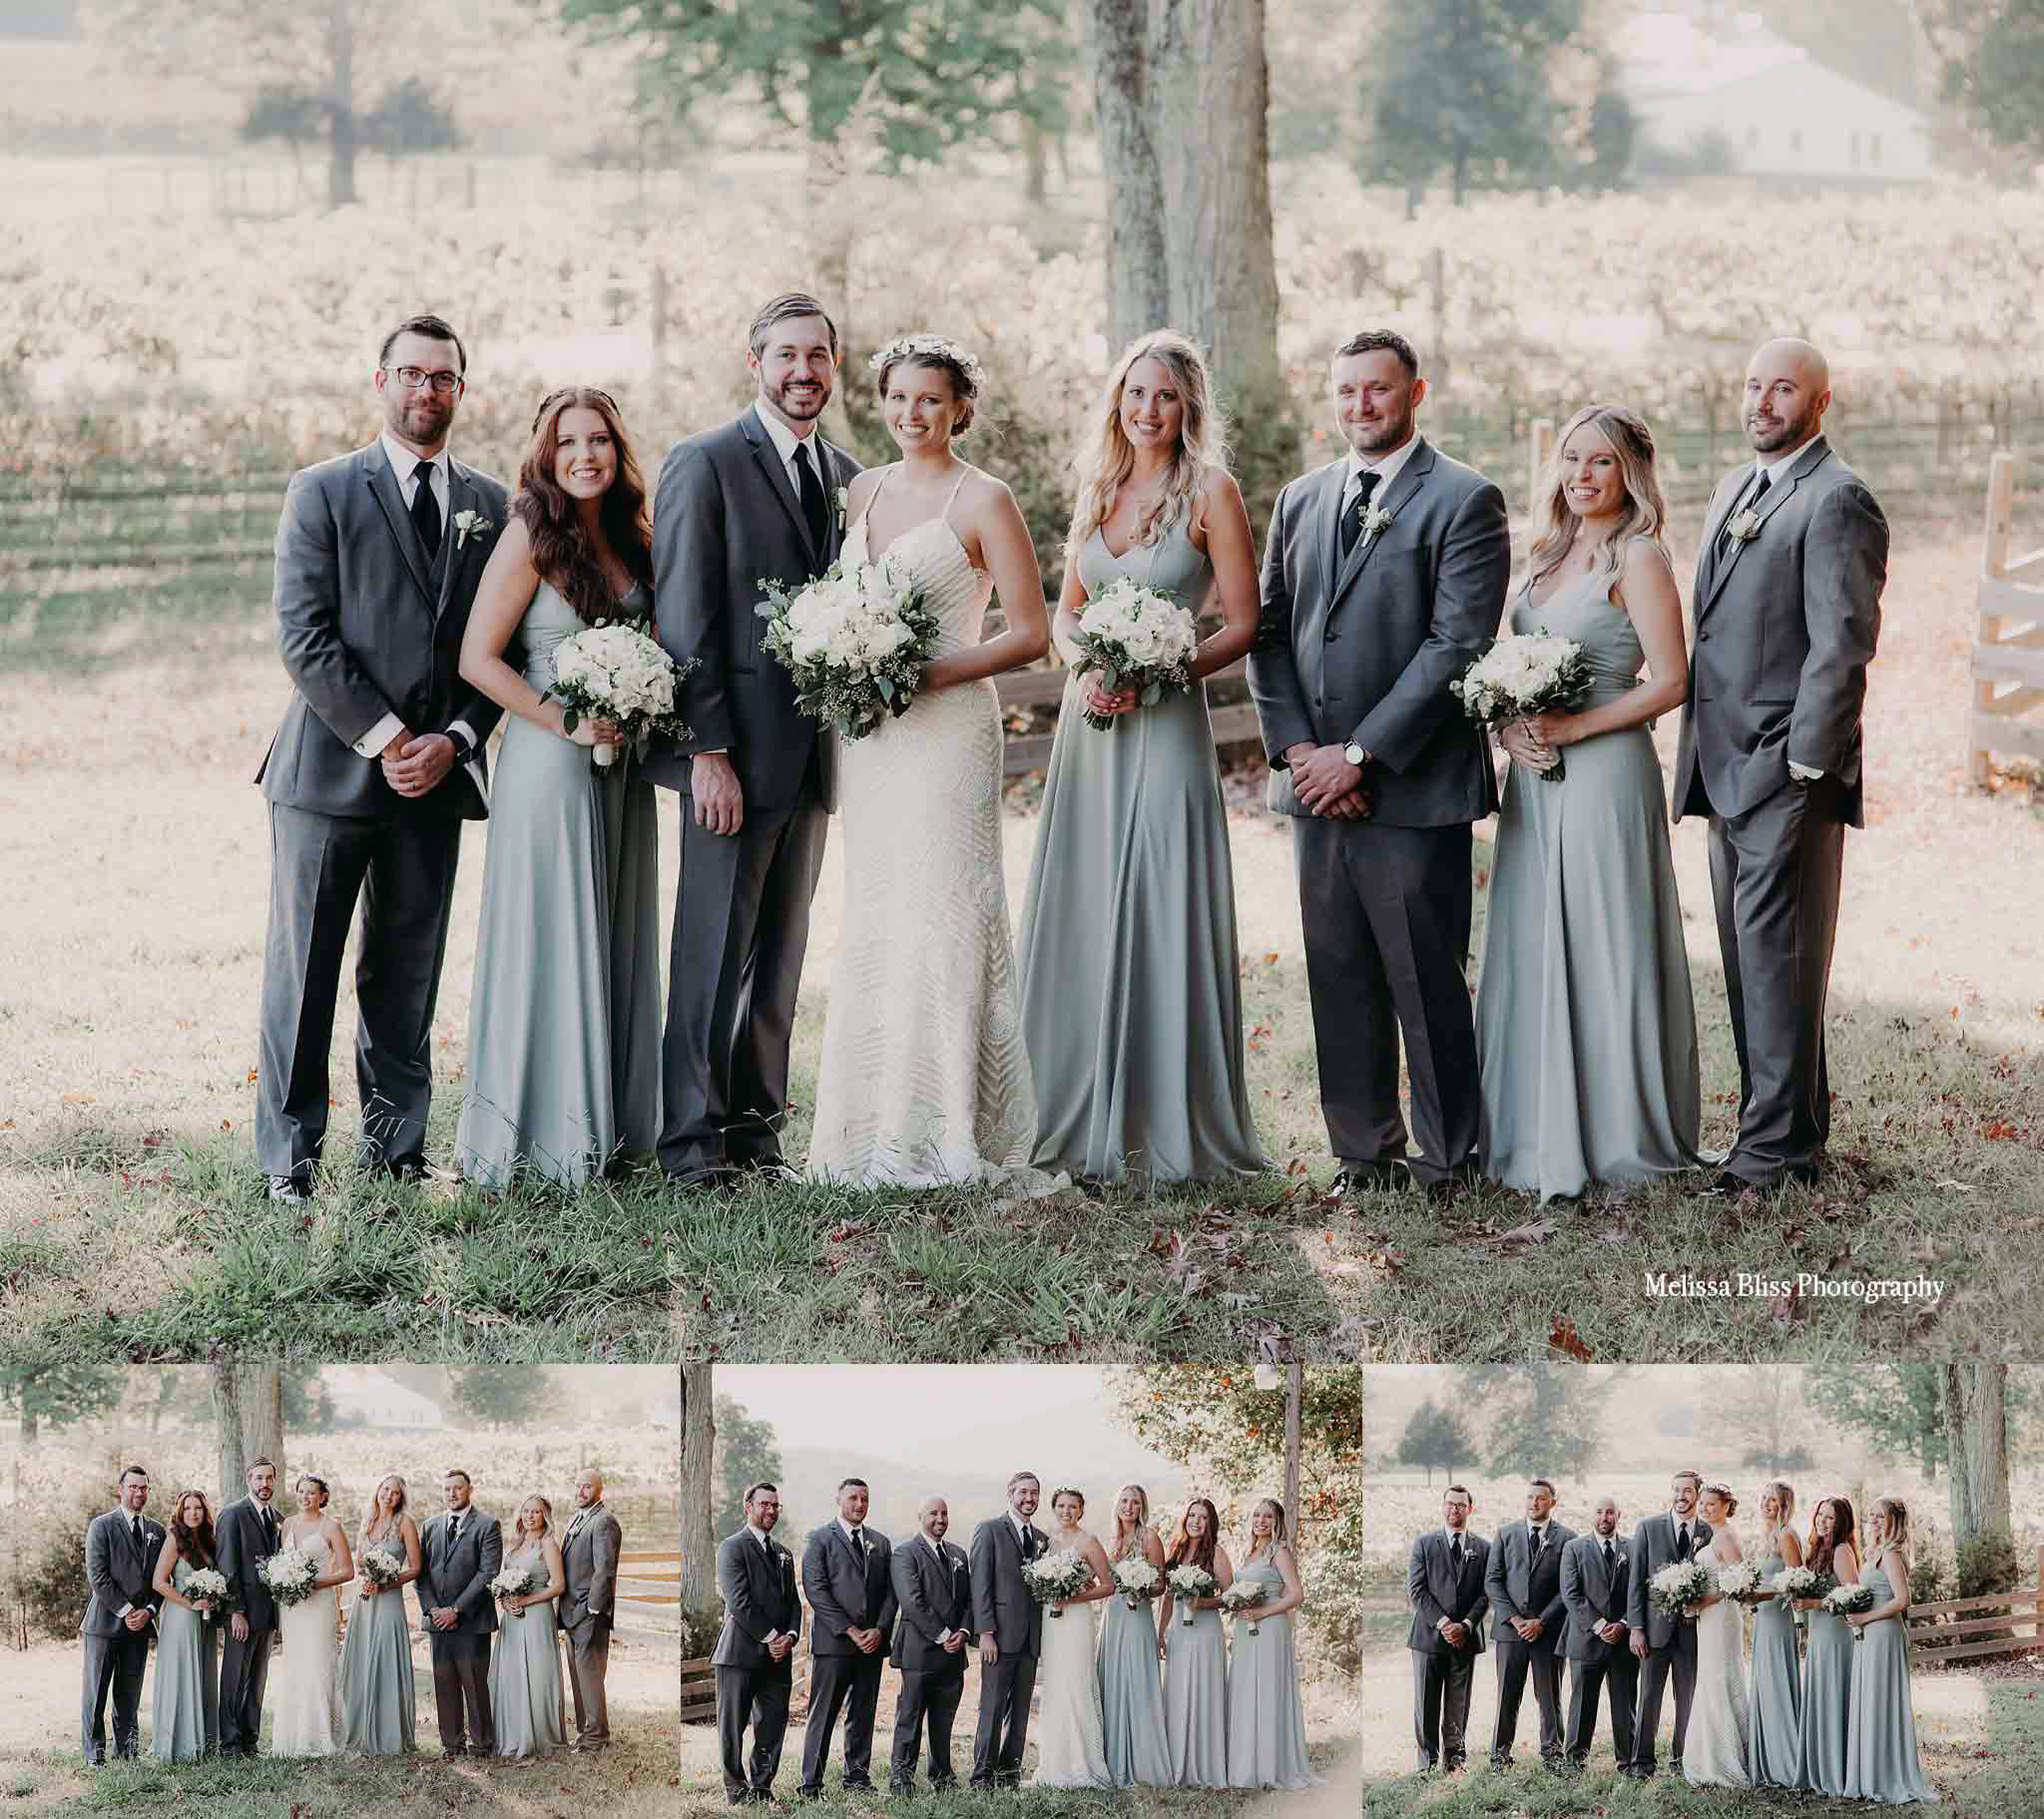 green-and-gray-wedding-veritas-vineyard-charlottesville-va-melissa-bliss-photography-norfolk-richmond-williamsburg-wedding-photographers.jpg